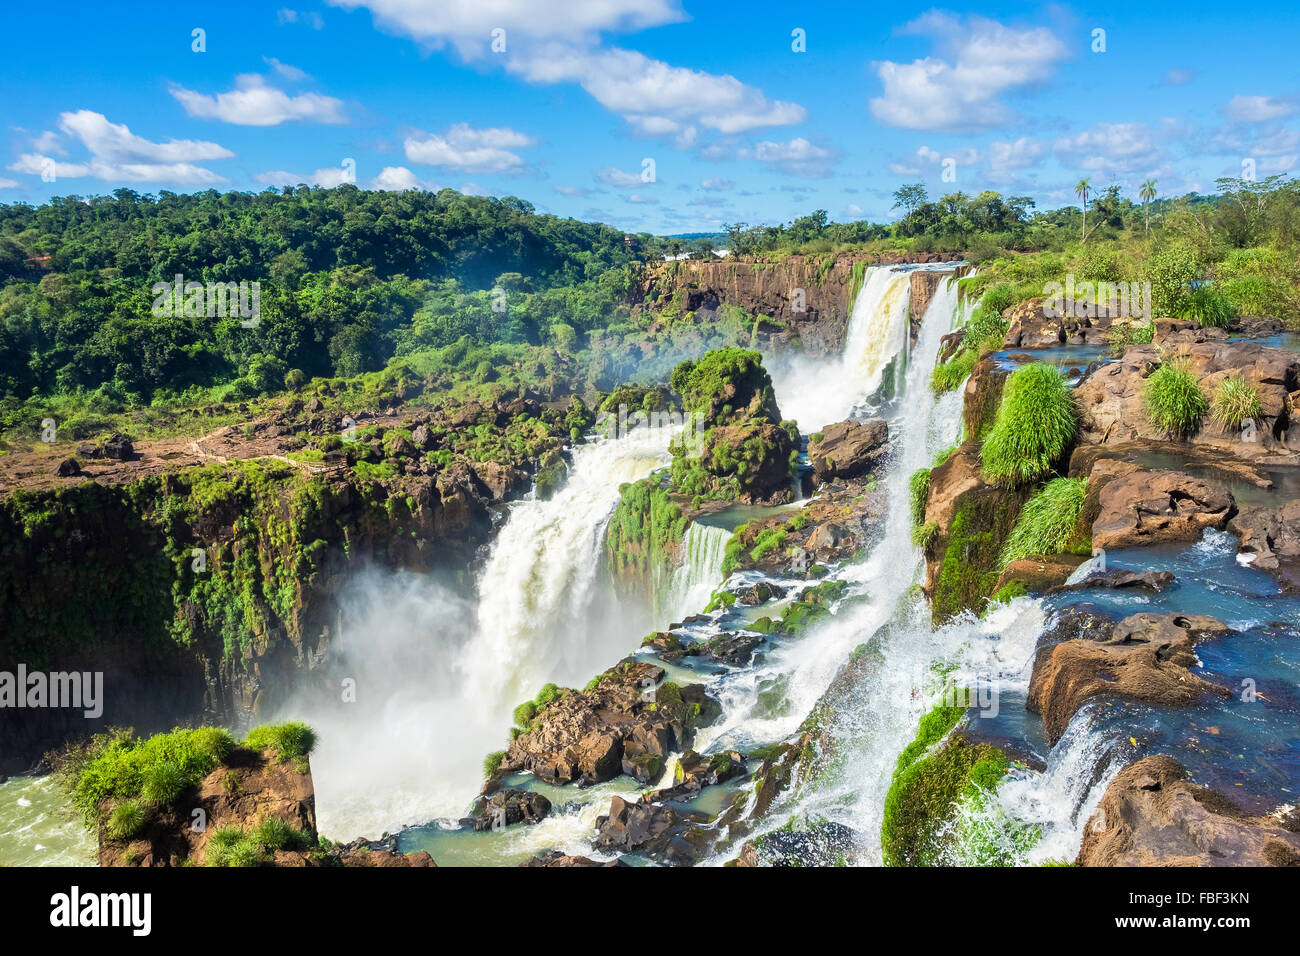 Iguazu Falls, on the border of Argentina, Brazil, and Paraguay. - Stock Image